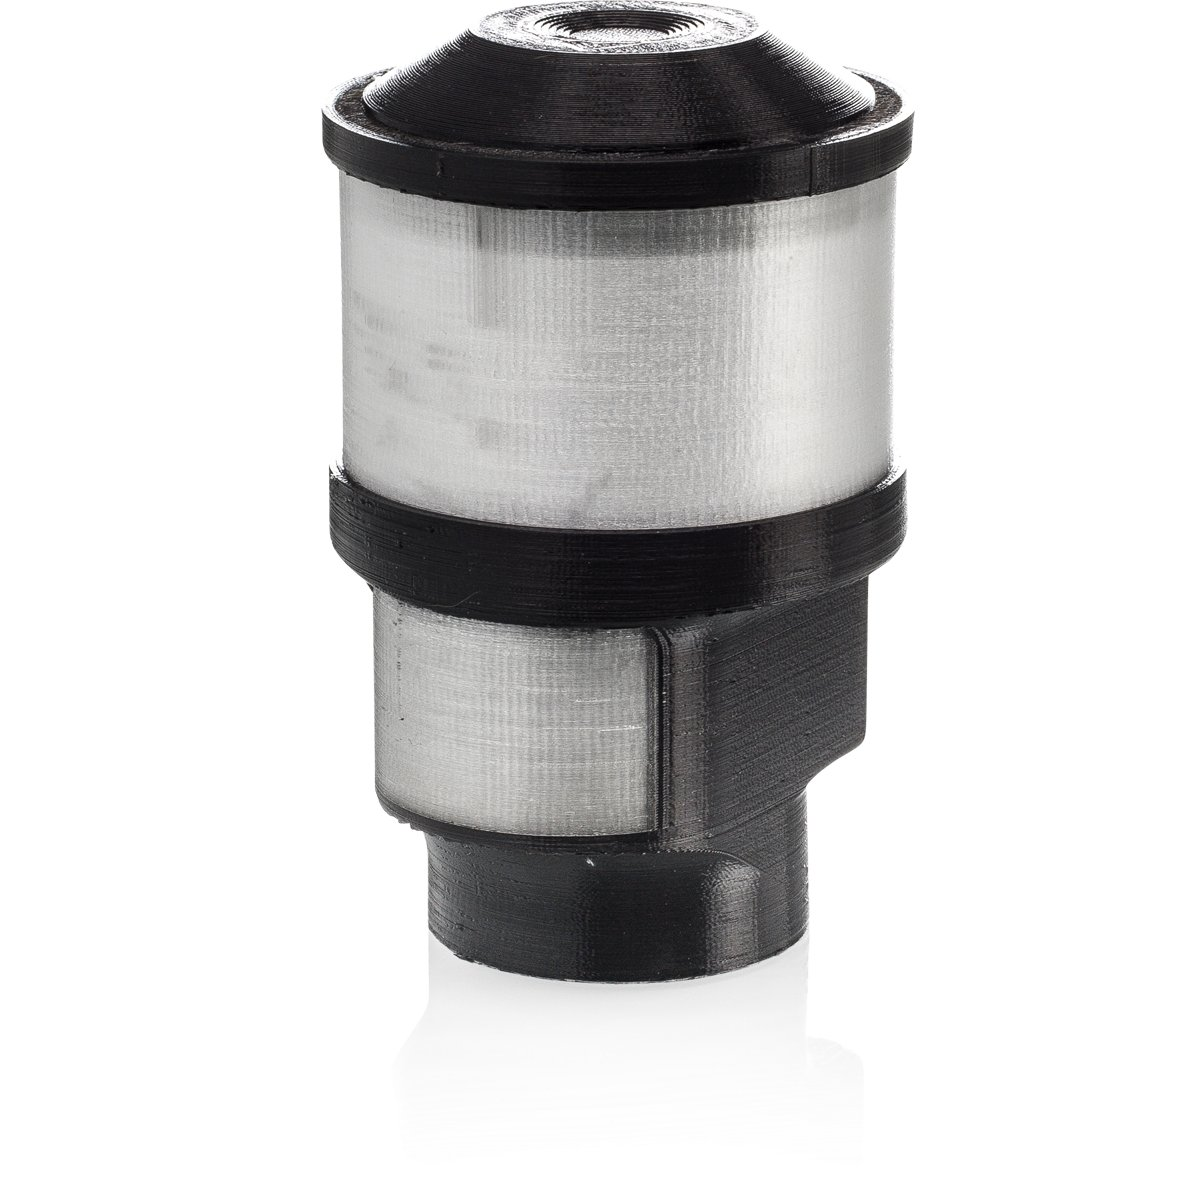 ultimaker-pc-outdoor-lamp-with-infra-red-sensor